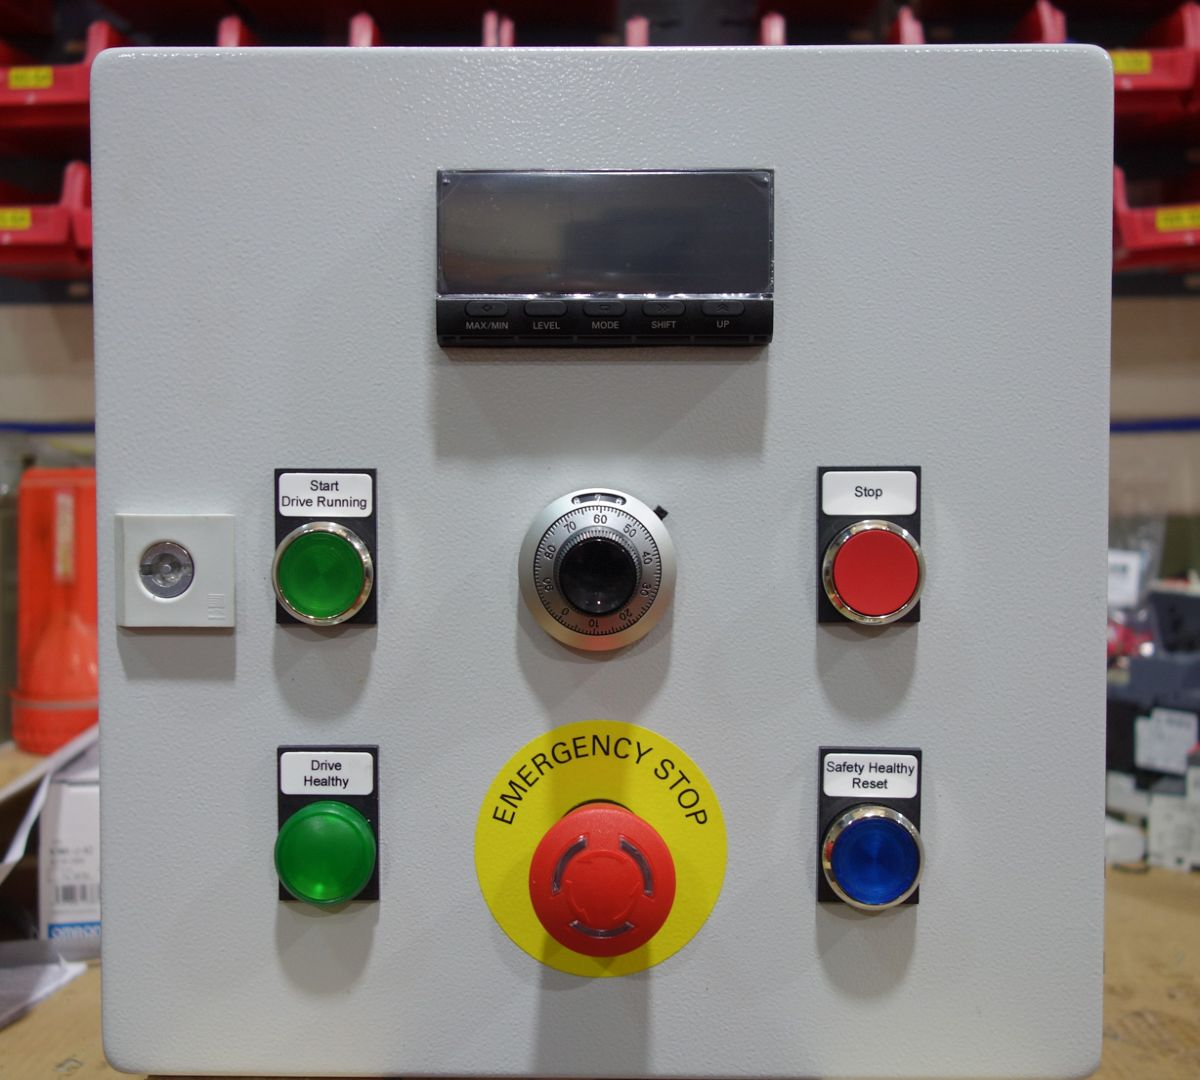 Small, yet powerful machine-mounted control panels